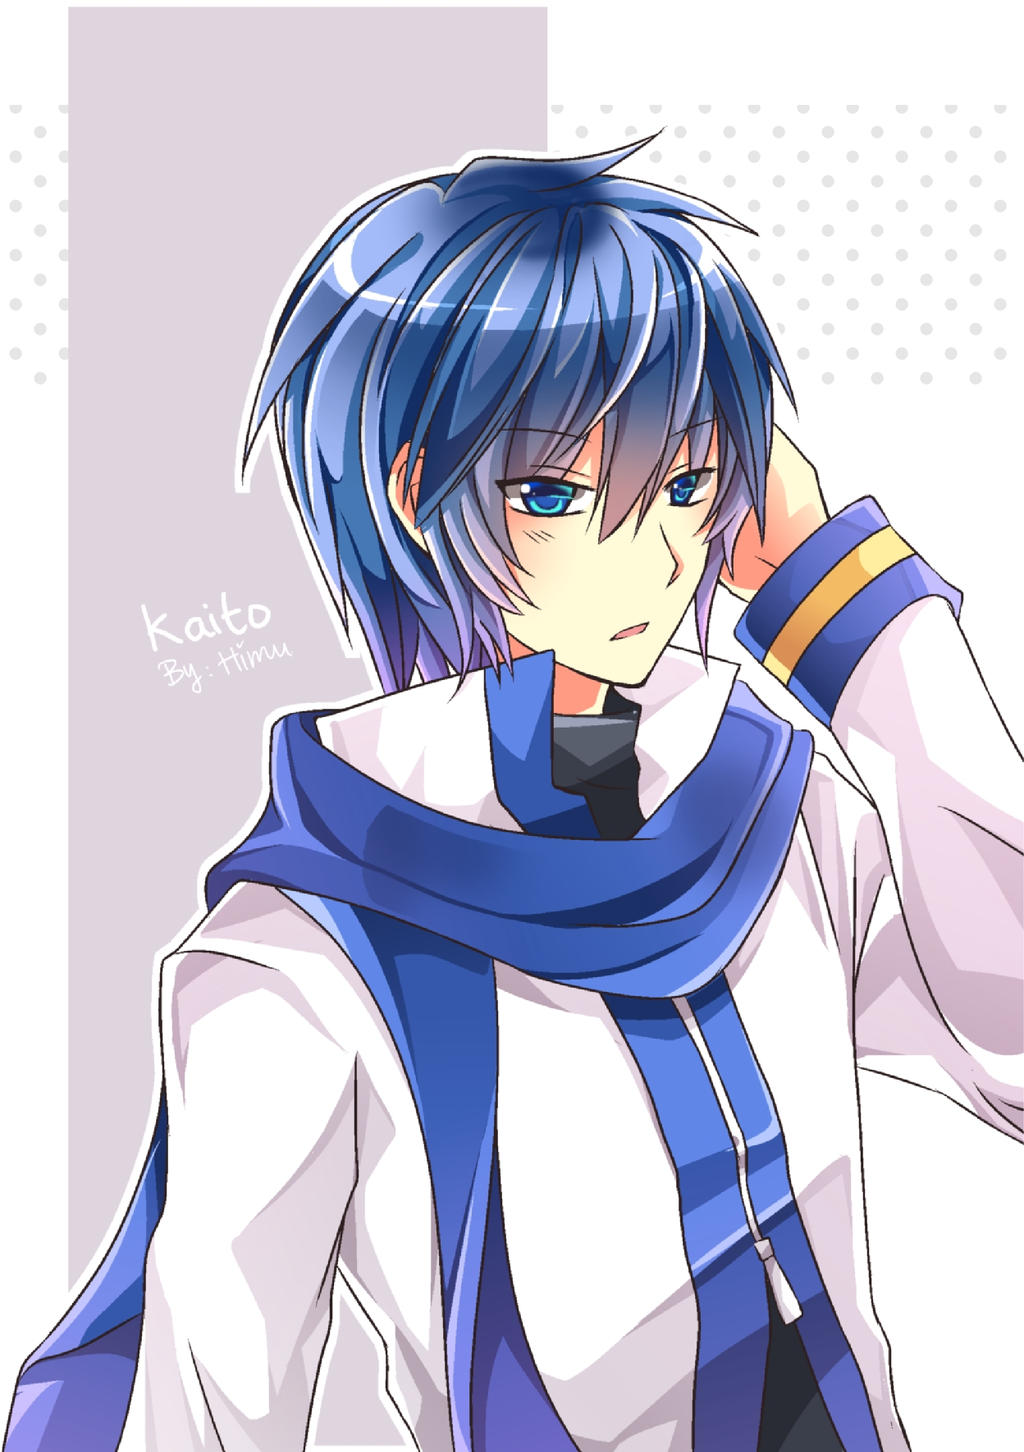 Fa Kaito Vocaloid By Himu Himu On Deviantart